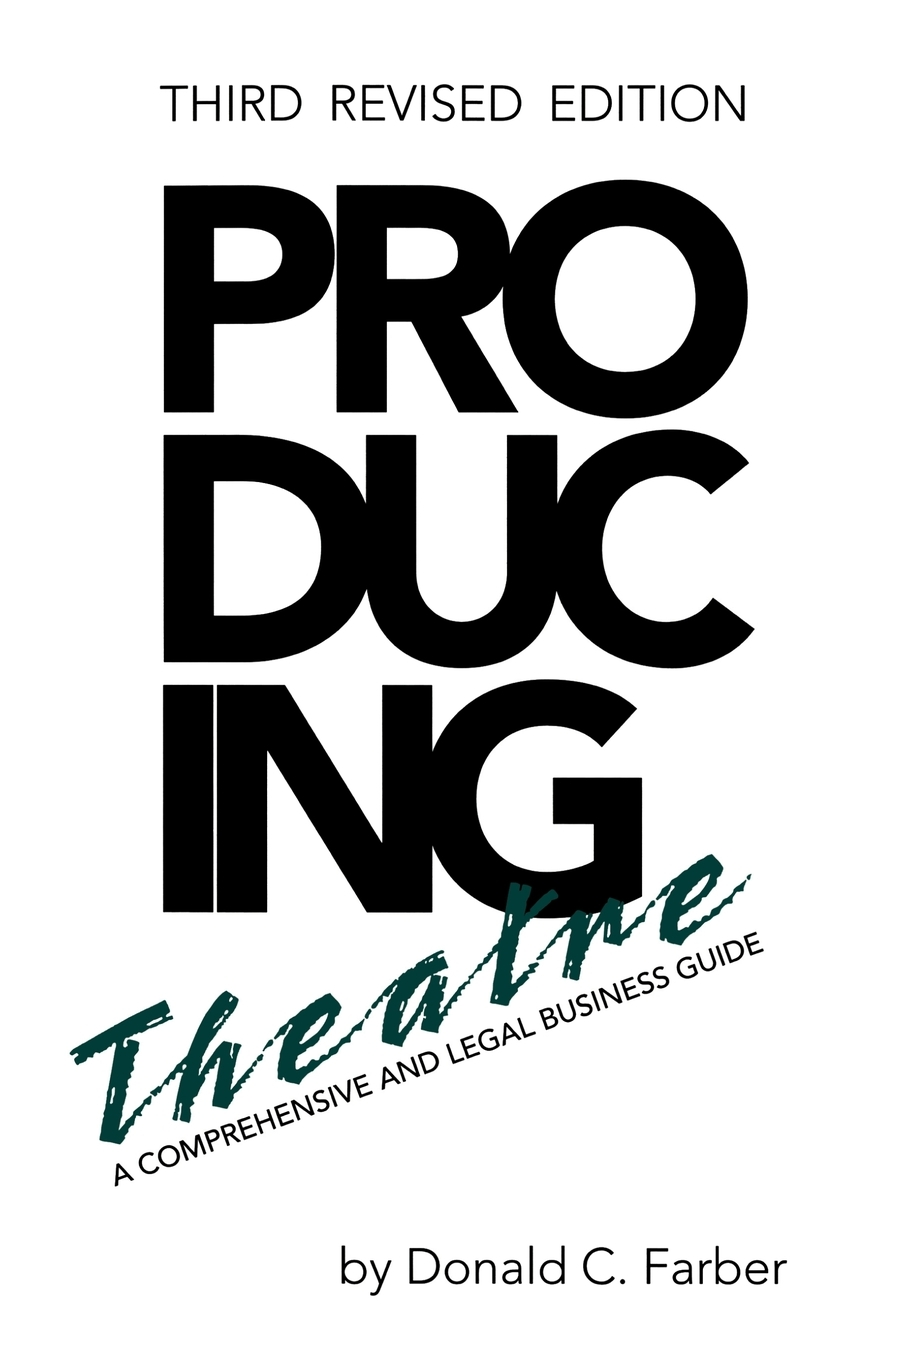 Producing Theatre : A Comprehensive Legal and Business